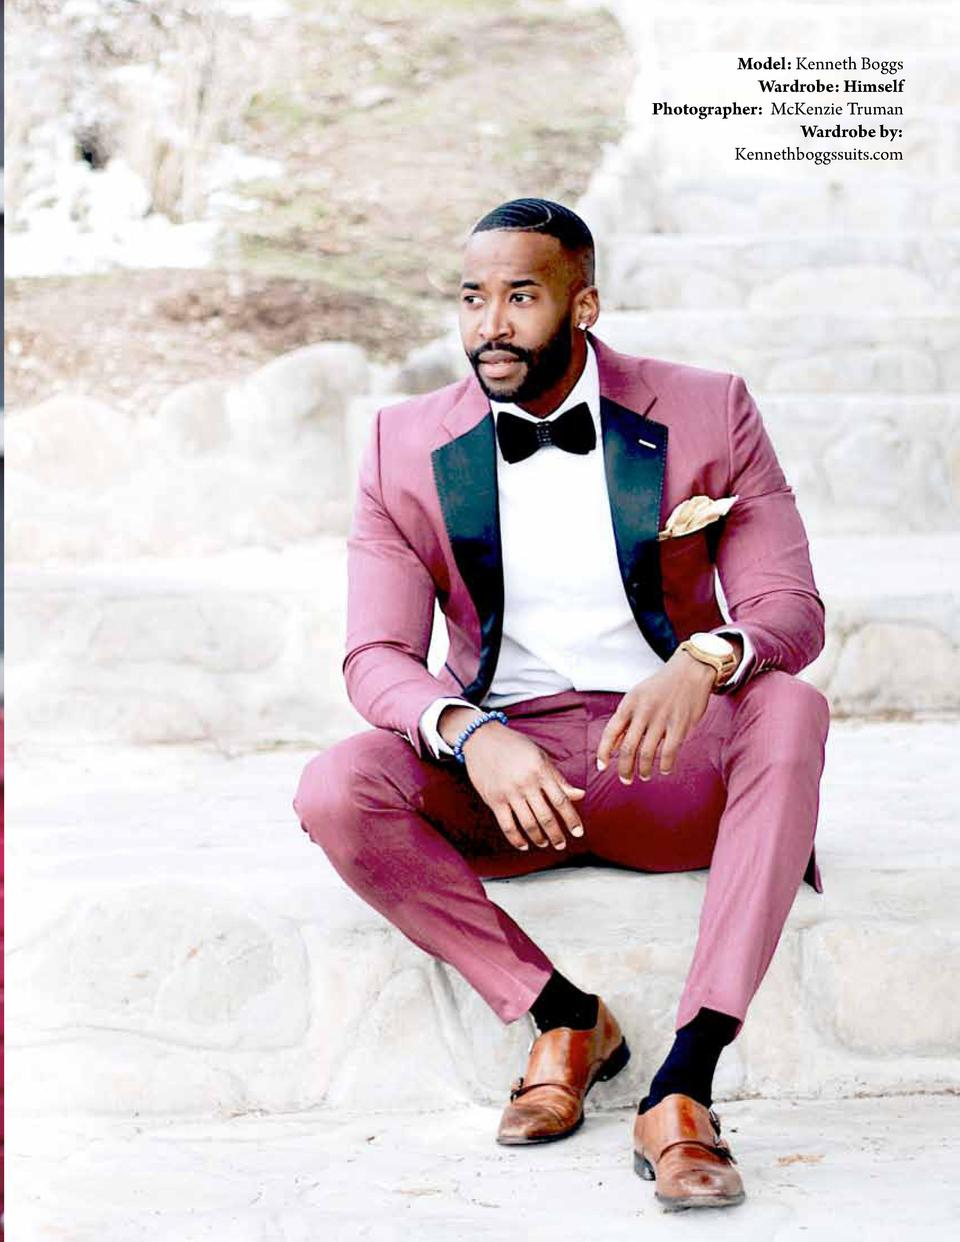 Model  Kenneth Boggs Wardrobe  Himself Photographer  McKenzie Truman Wardrobe by  Kennethboggssuits.com